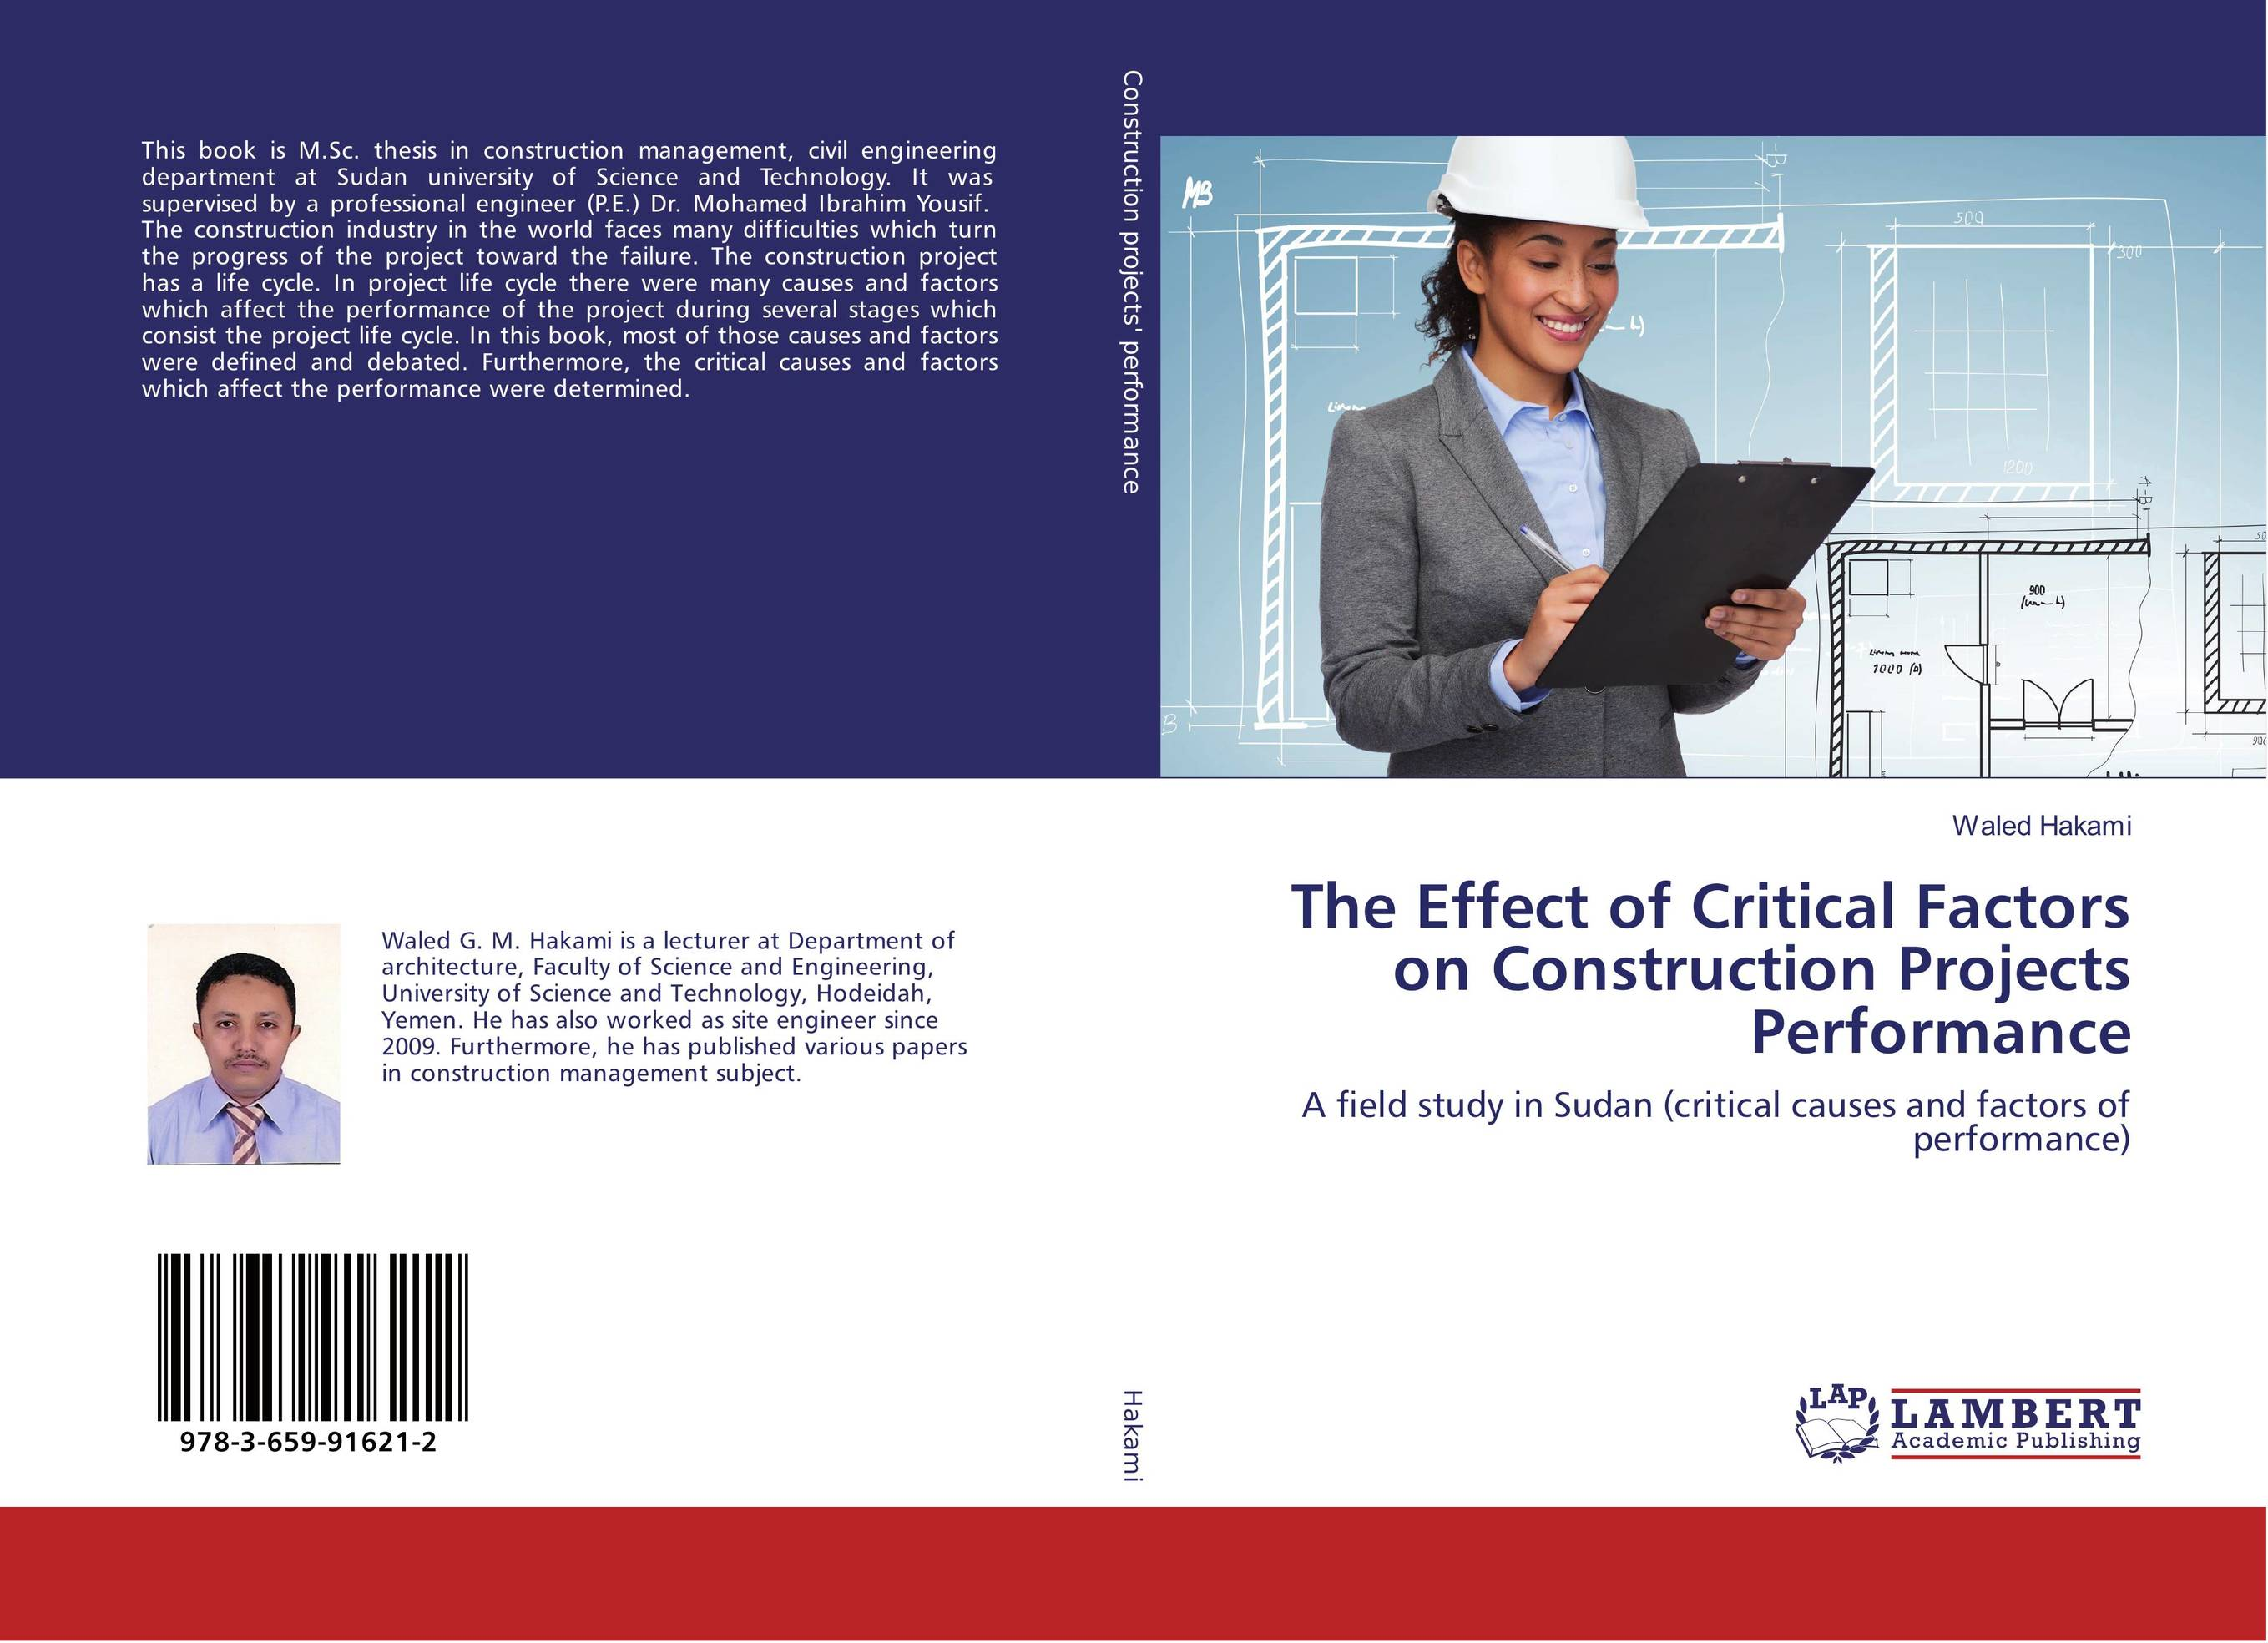 critical factors affecting project performance construction essay Pm world journal critical success factors for the construction industry vol v, issue viii - august 2016 by zakari tsiga, michael emes, alan smith construction industry.